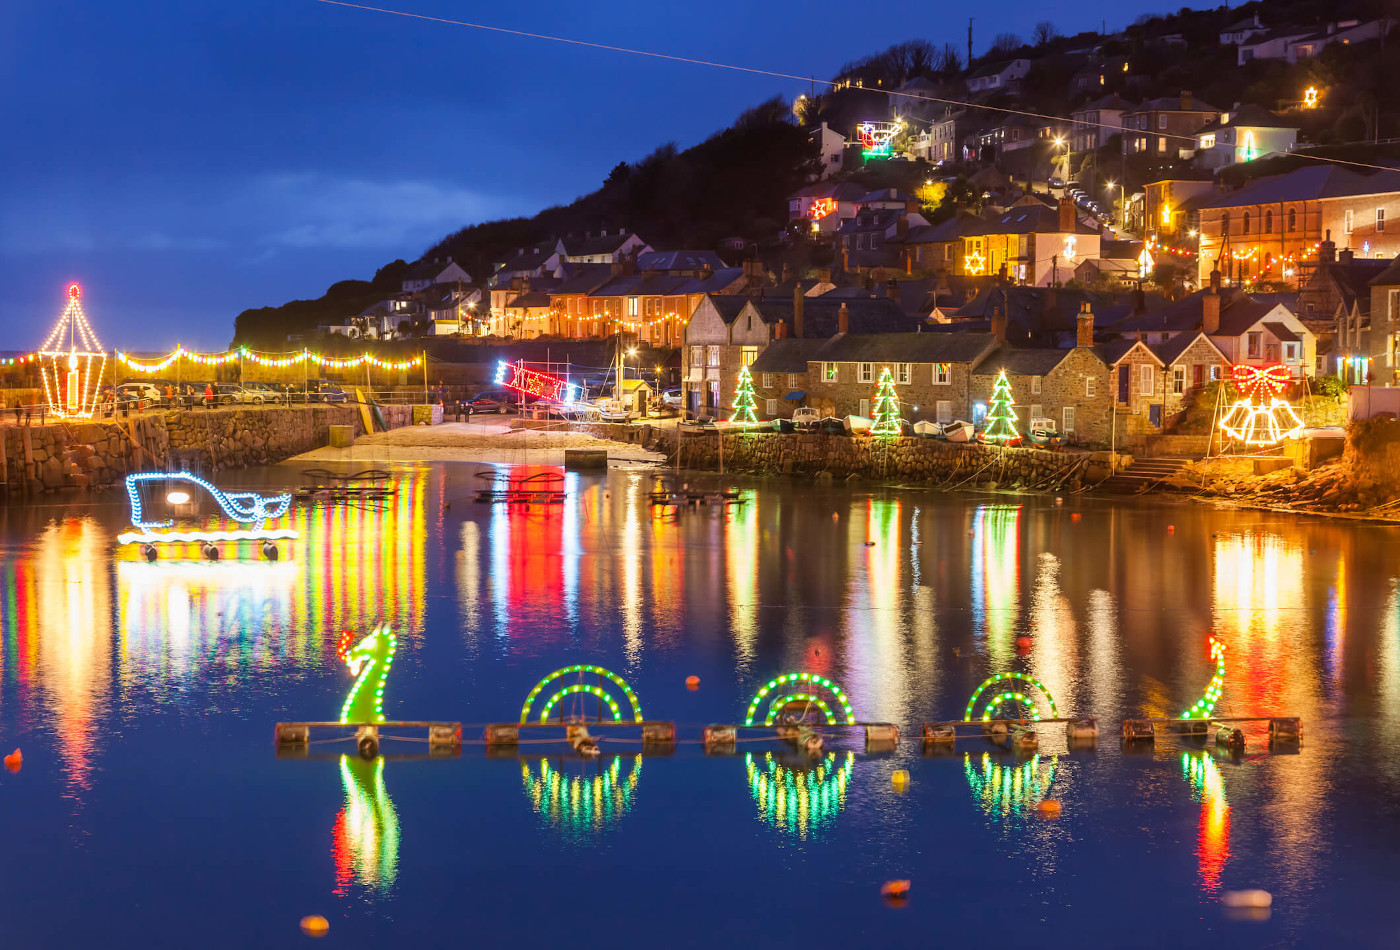 Mousehole harbour Christmas lights display